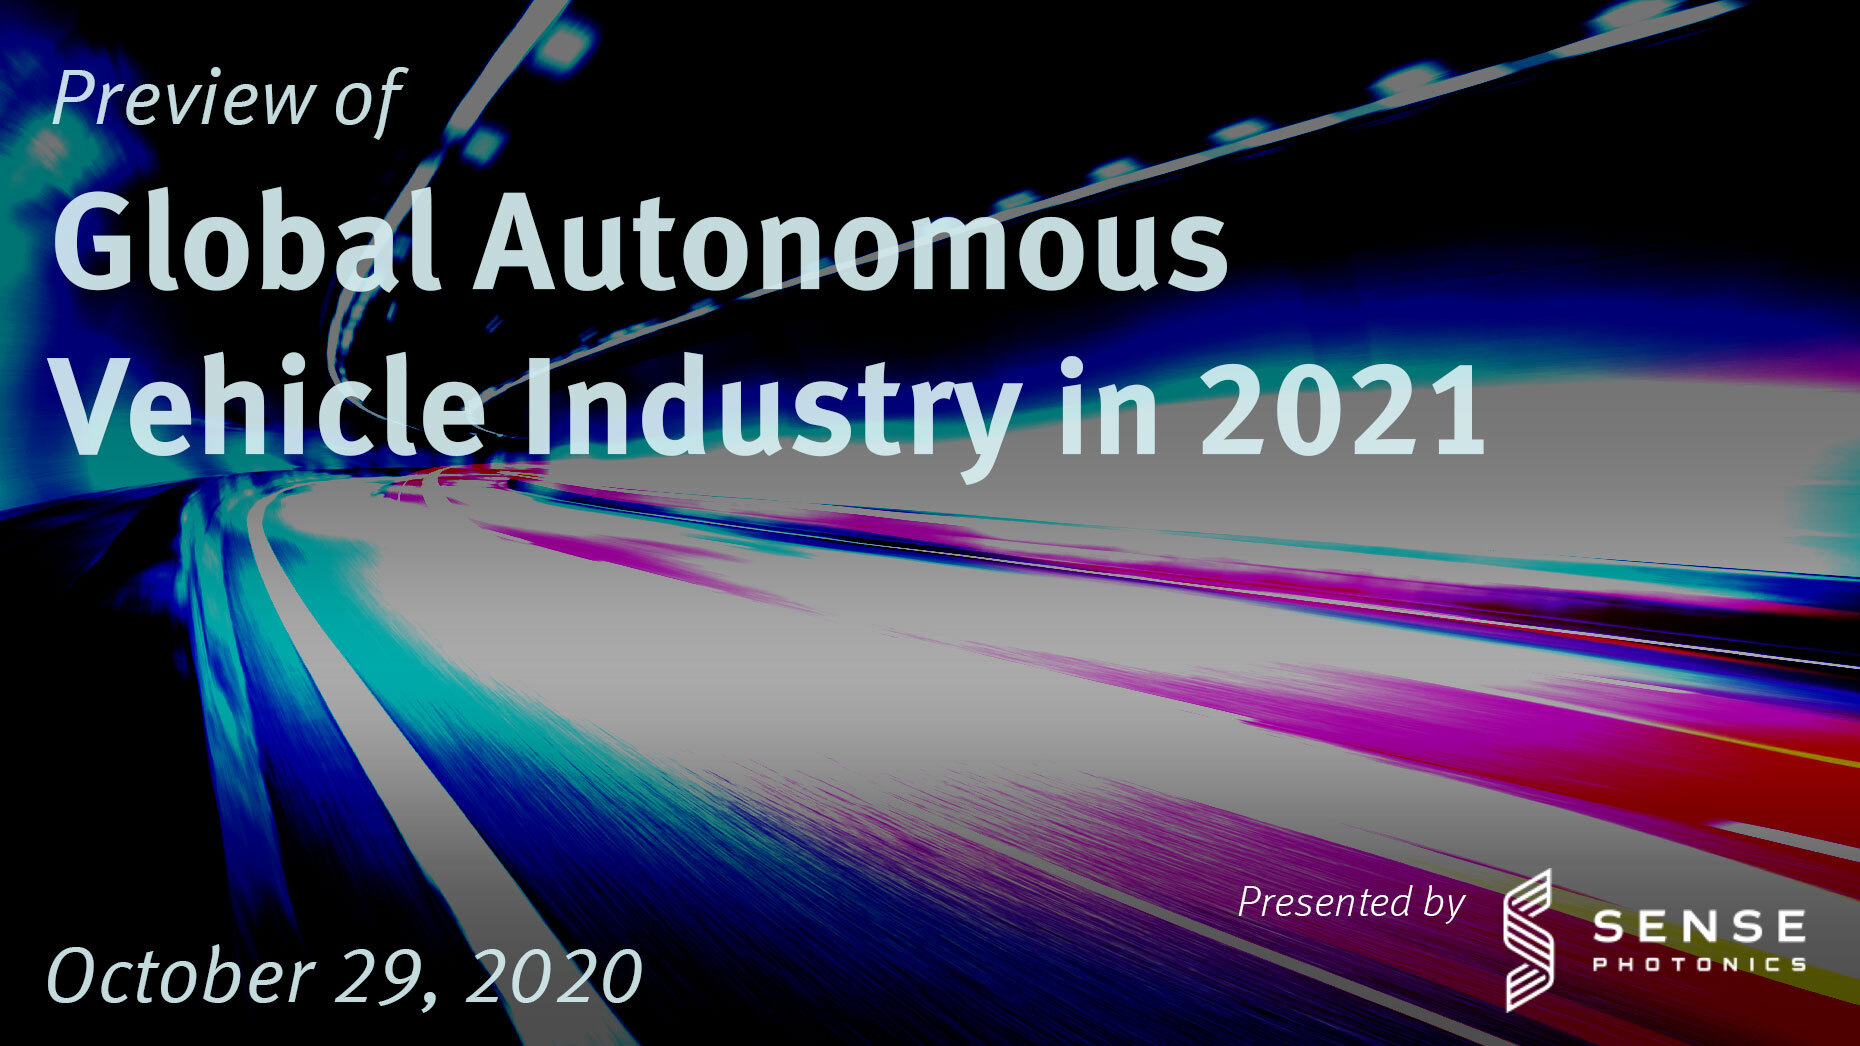 Preview of Global Autonomous Vehicle Industry in 2021